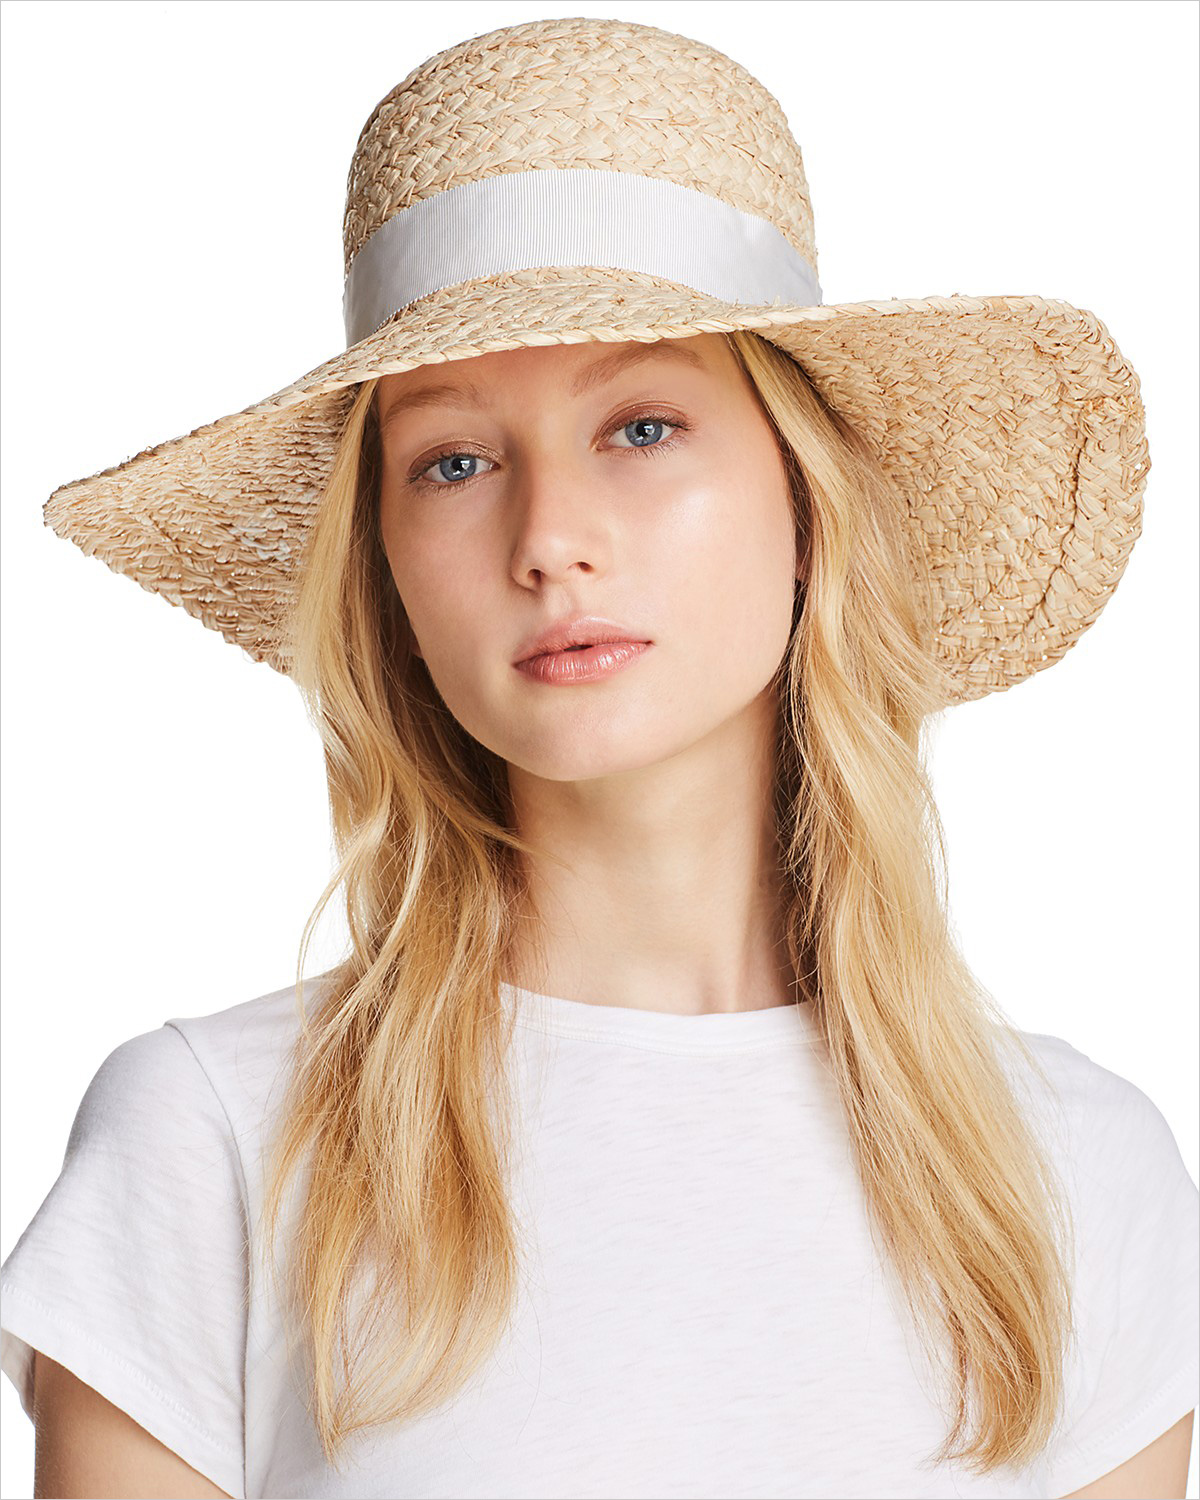 Kate Spade New York Just married sunhat bloomingdale's